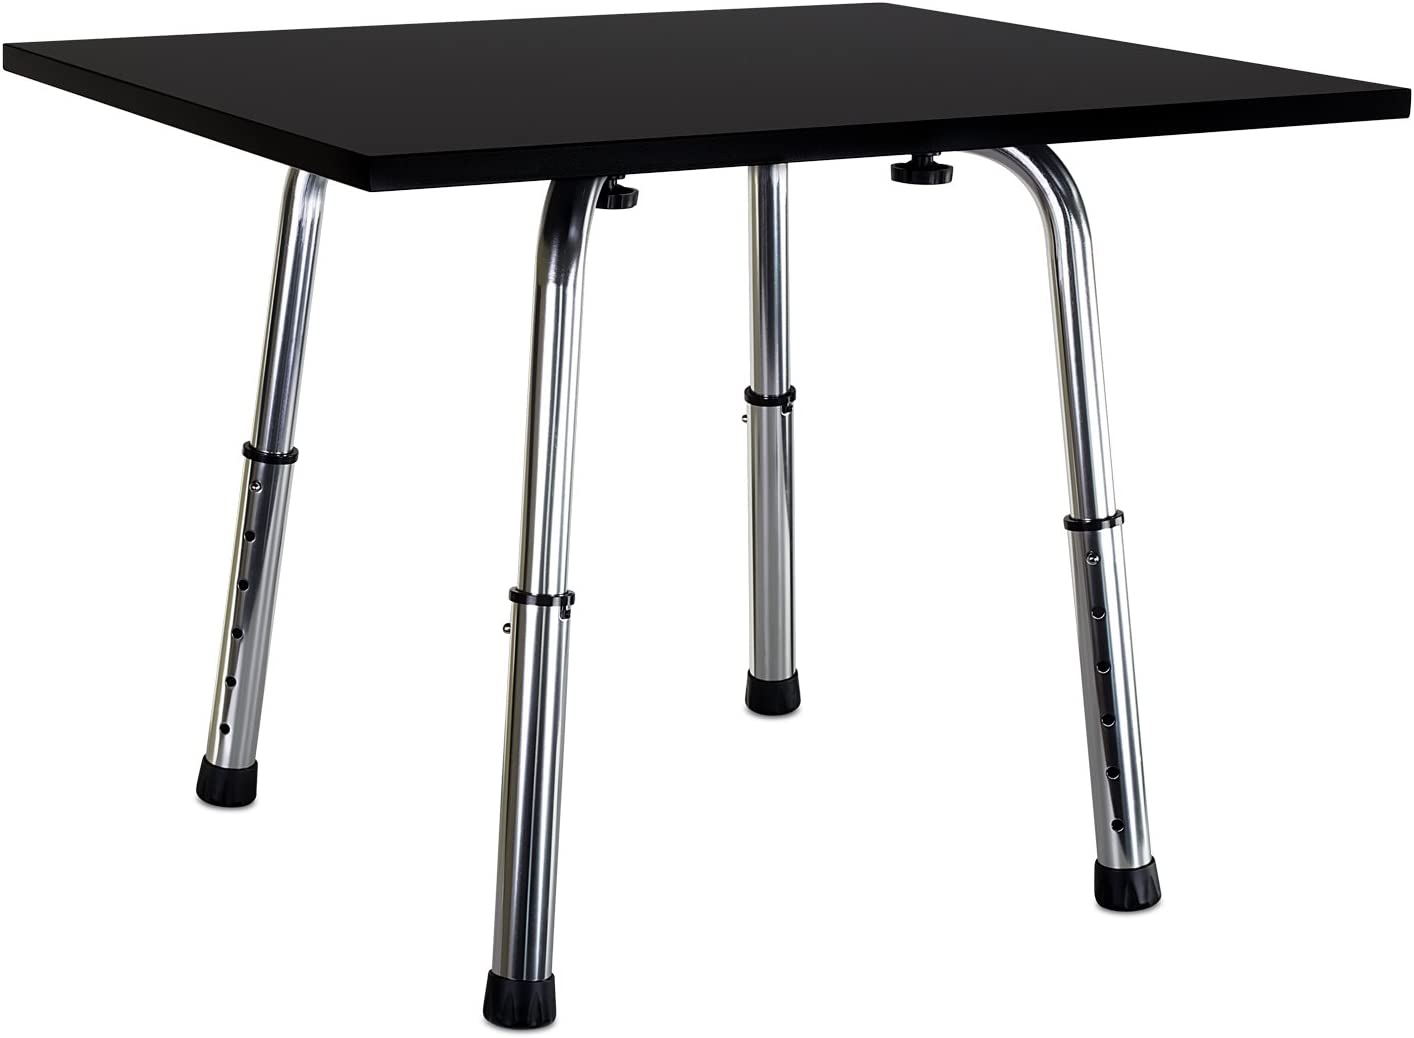 Mount-It Tabletop Standing Desk Extension with Height Adjustable Legs, 24×20 Inch Riser for Laptops, Keyboards and Monitor – Convert Your Desk Top to A Standing Desk